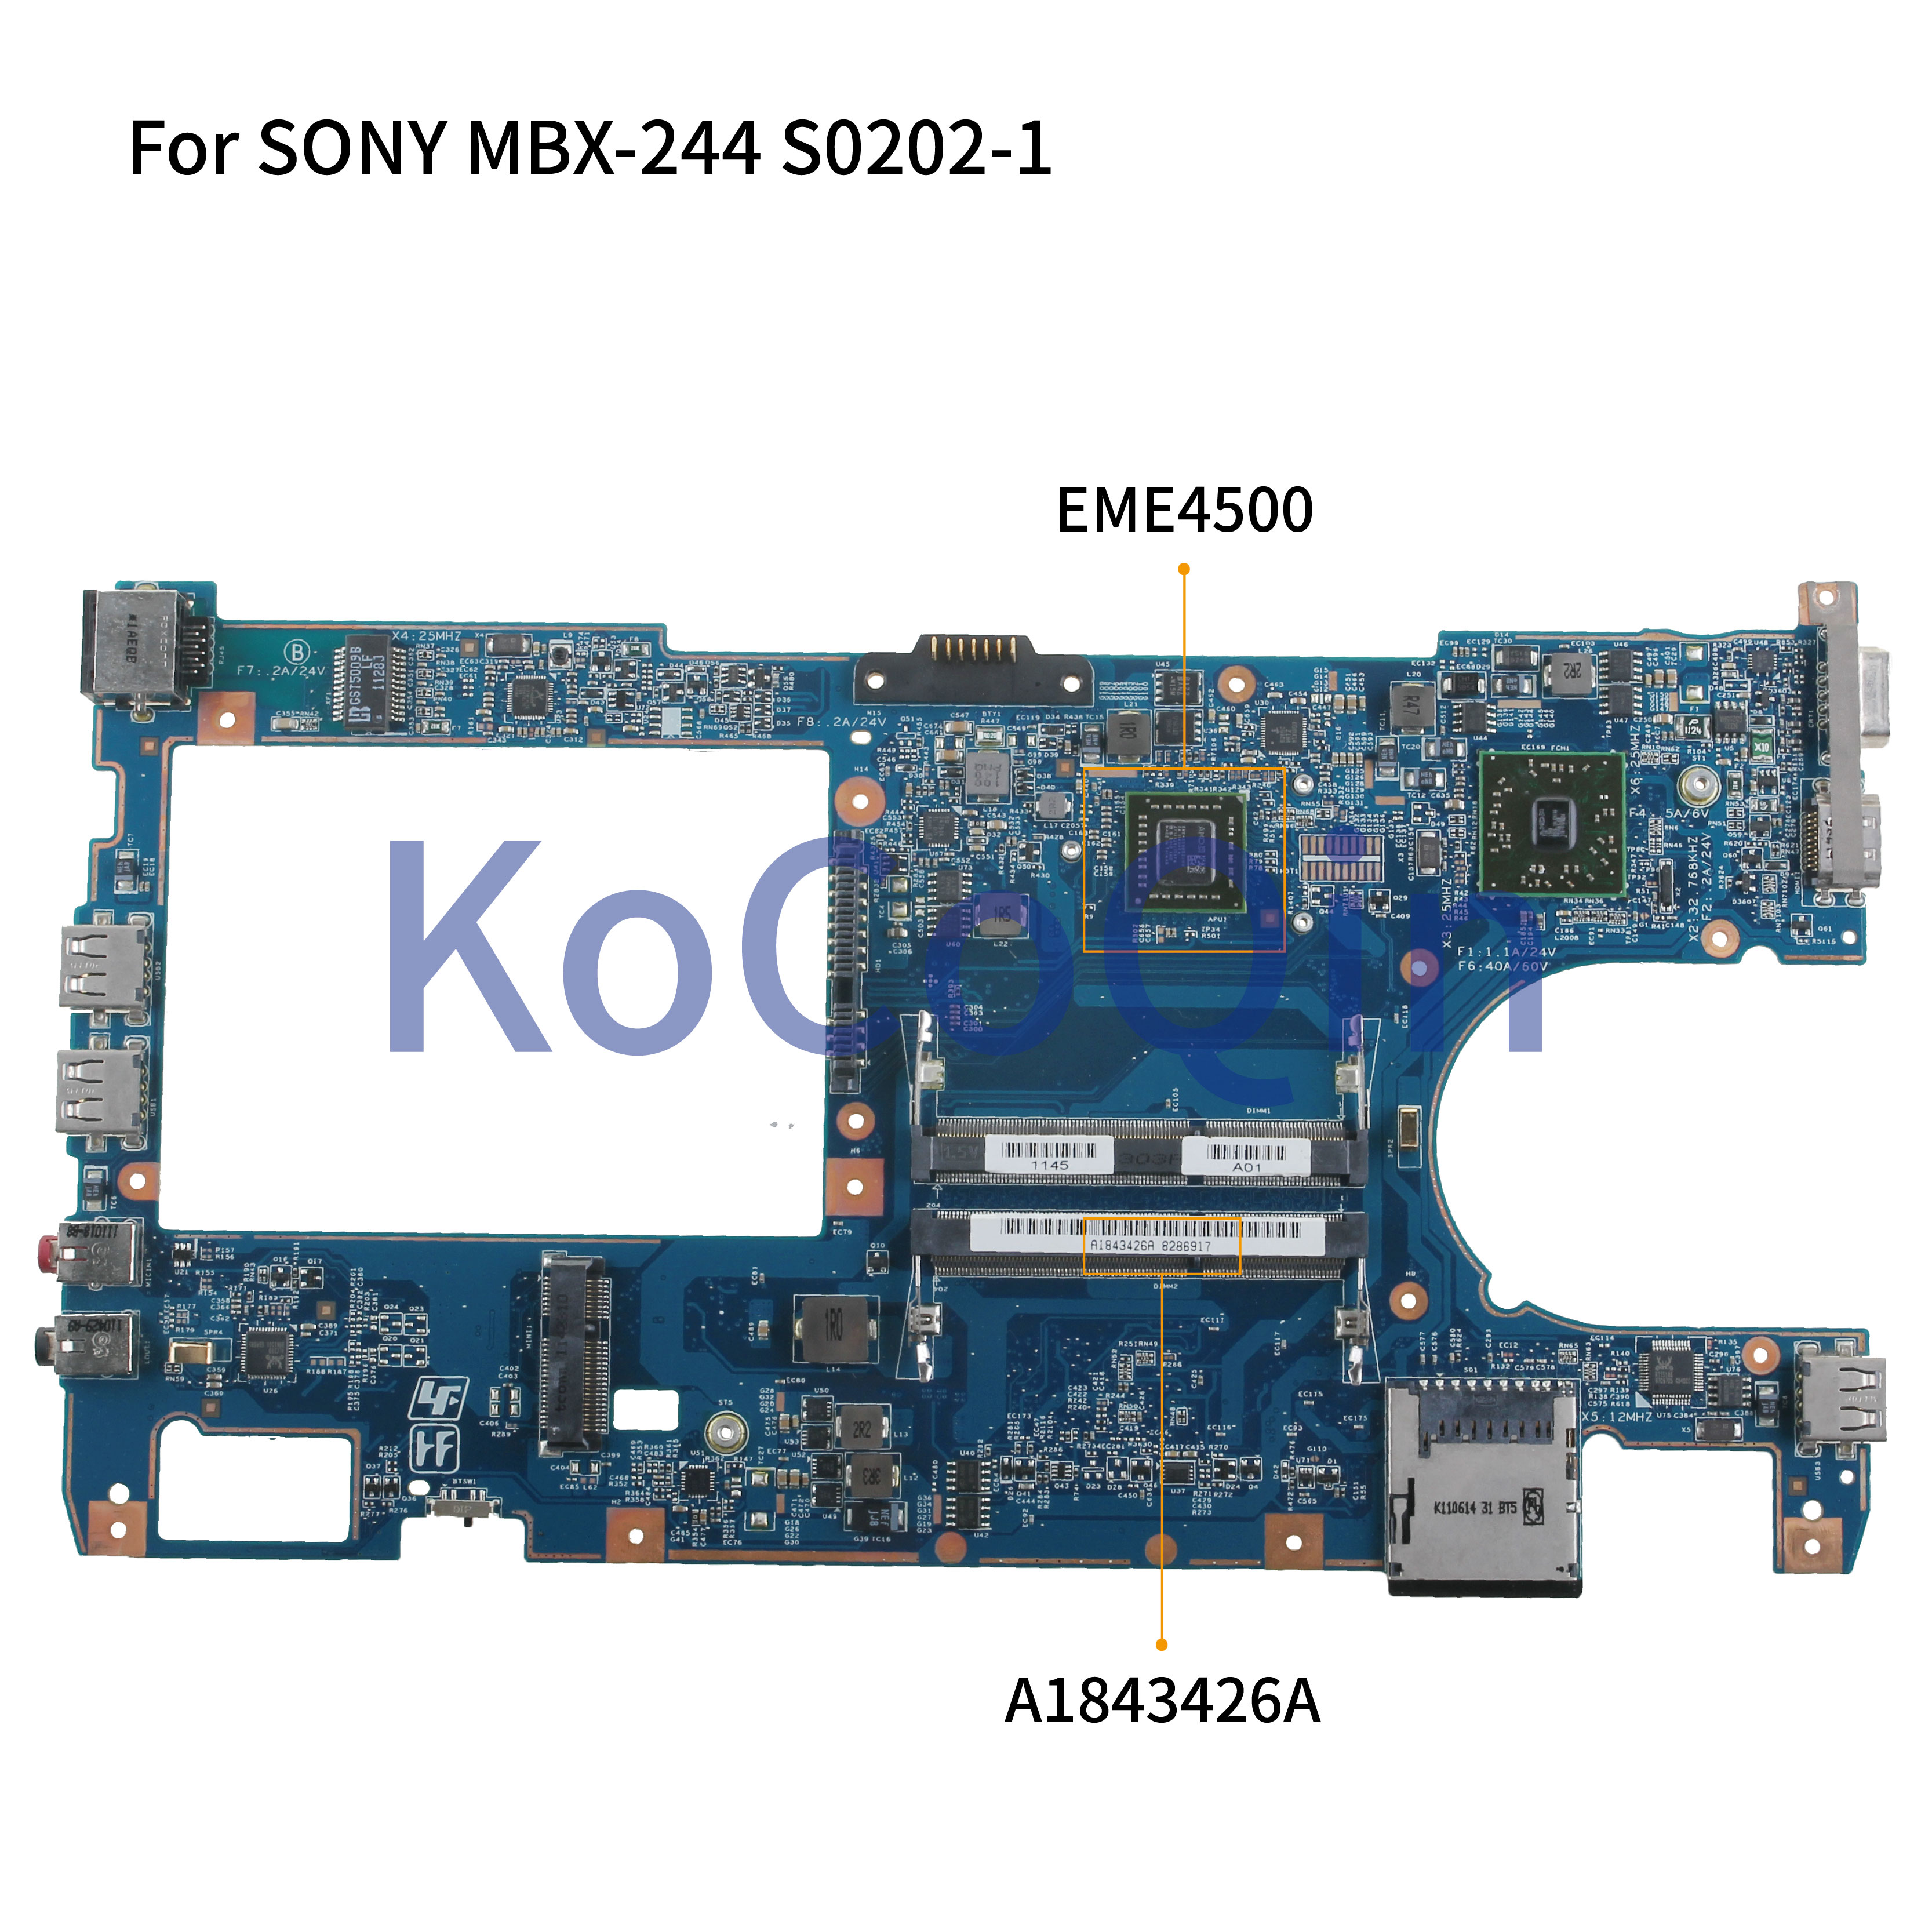 KoCoQin Laptop Motherboard For SONY VPCYB3 MBX-244 Mainboard A1843426A S0202-1 48.4KY02.011 CPU EME4500